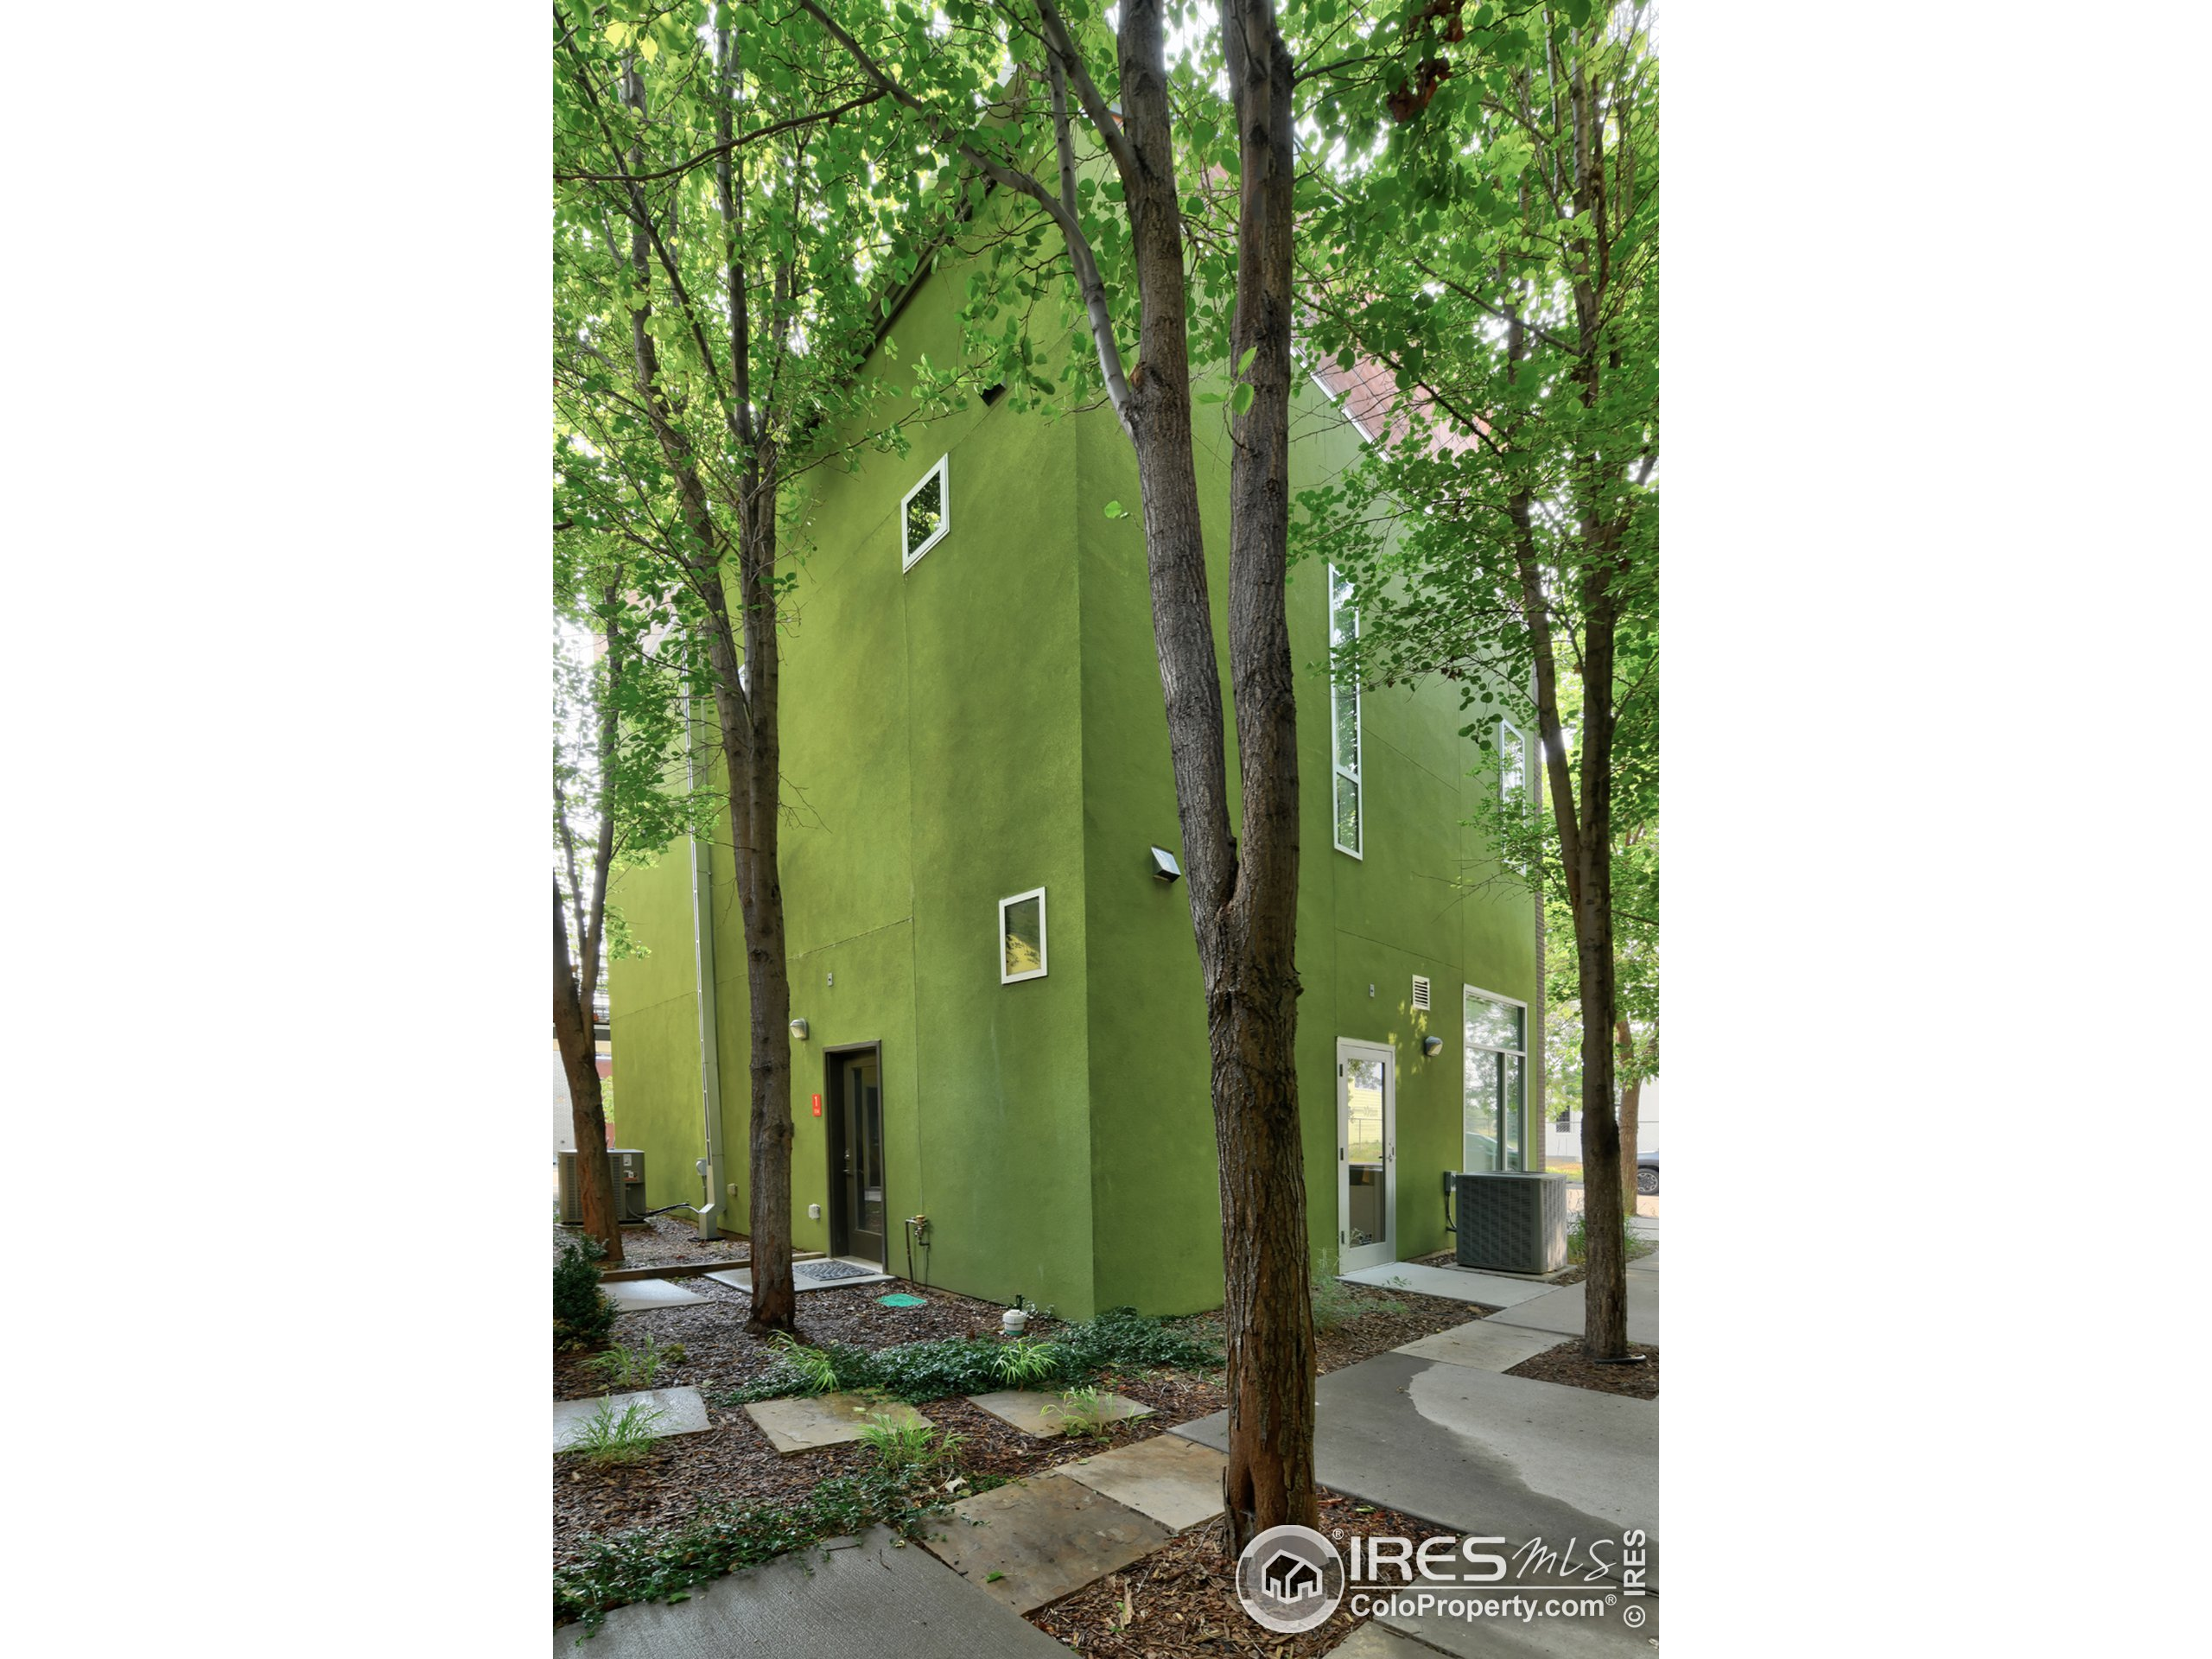 Mature Pear Trees & Professional landscaping greet you